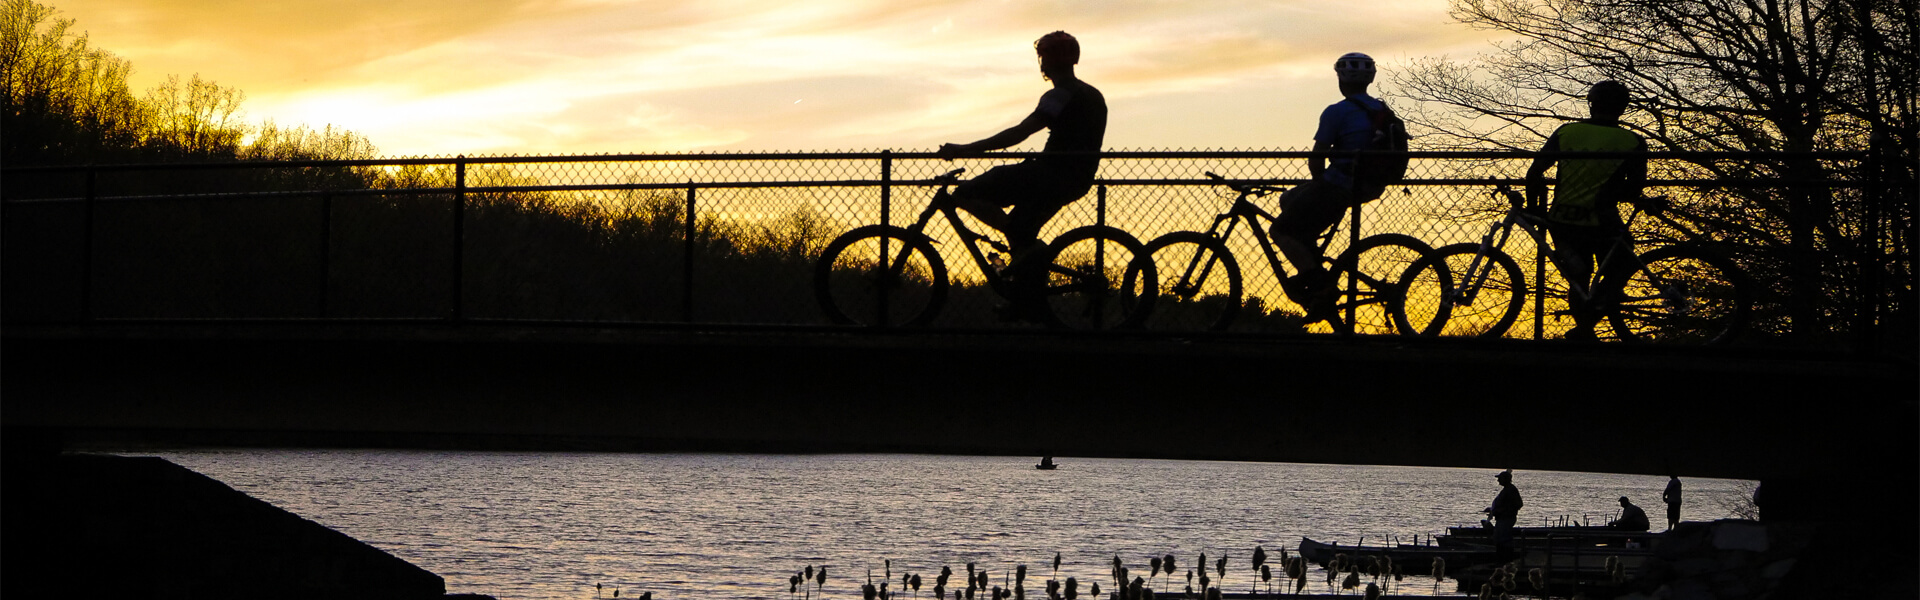 Three bicyclists on a bridge overlooking fishermen at sunset